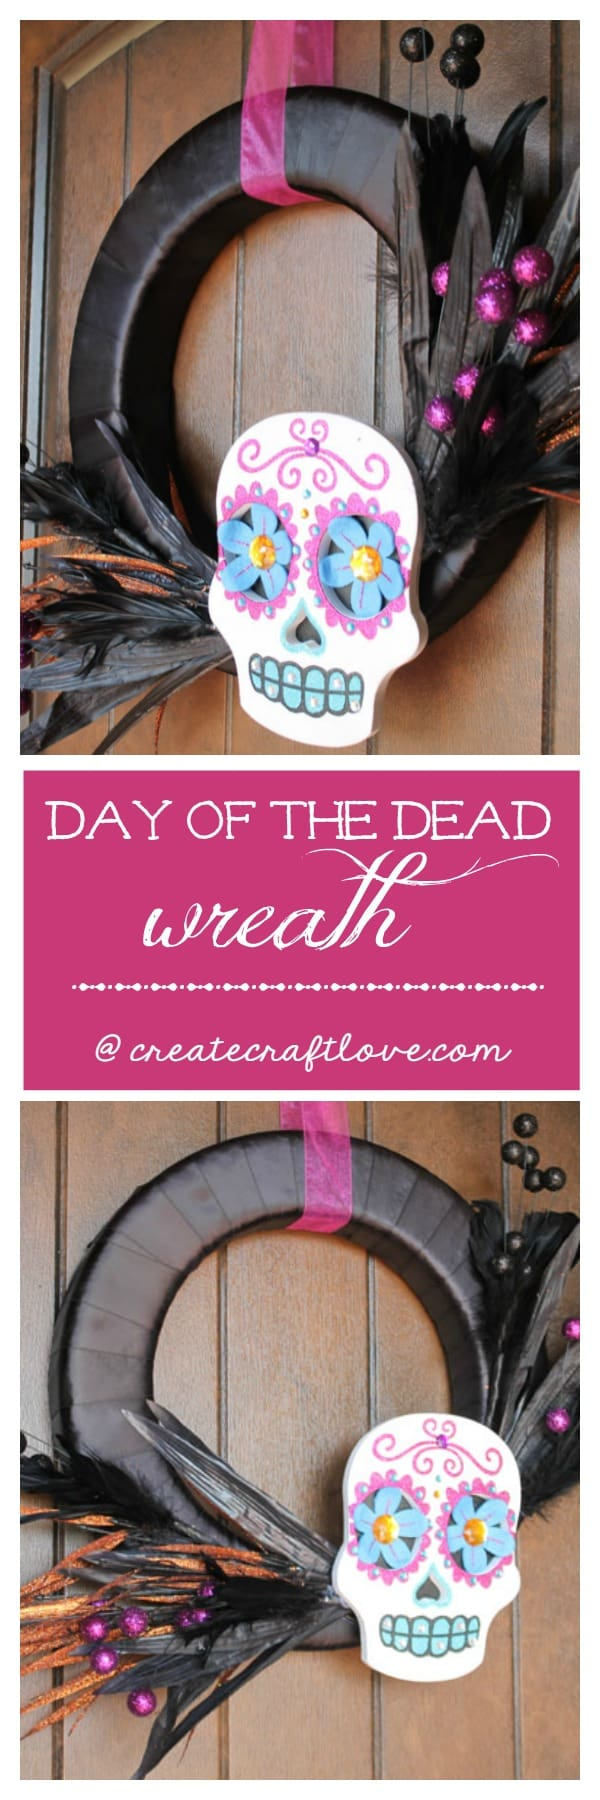 Celebrate your ancestors with this Day of the Dead Wreath!